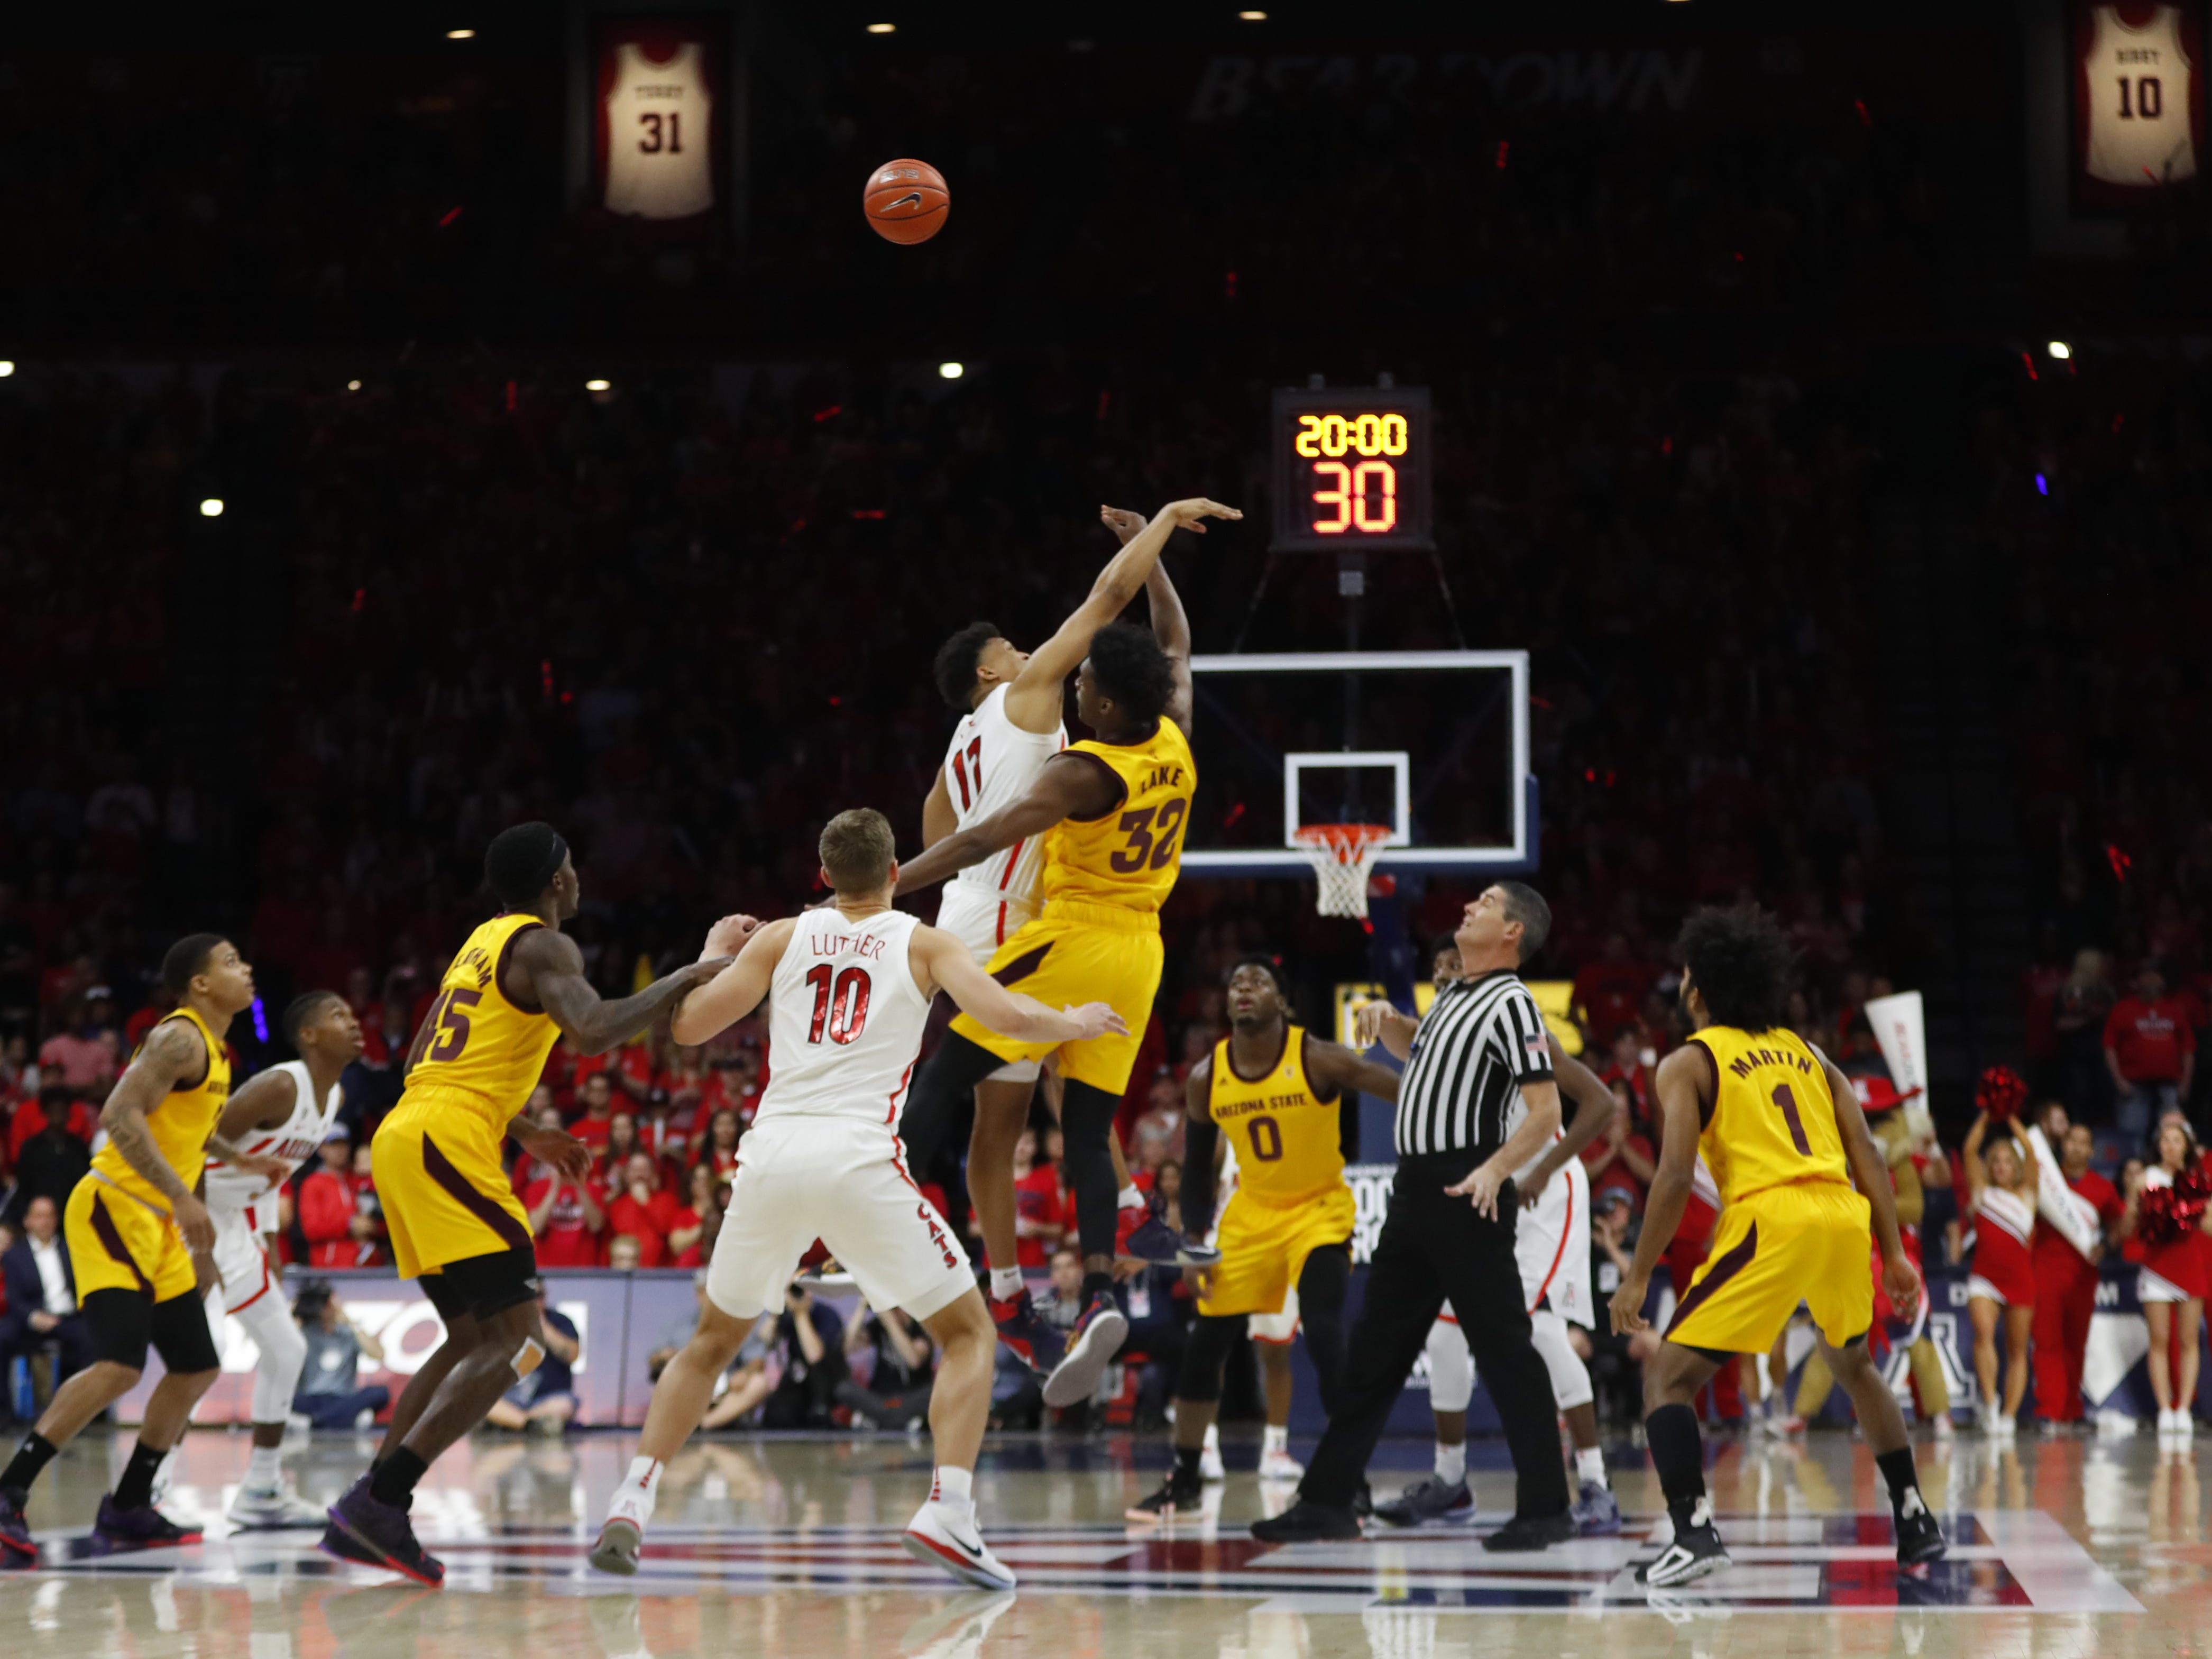 ASU's DeQuon Lake (32) wins the tip against Arizona's Ira Lee during the first half at the McKale Memorial Center in Tucson, Ariz. on March 9, 2019.